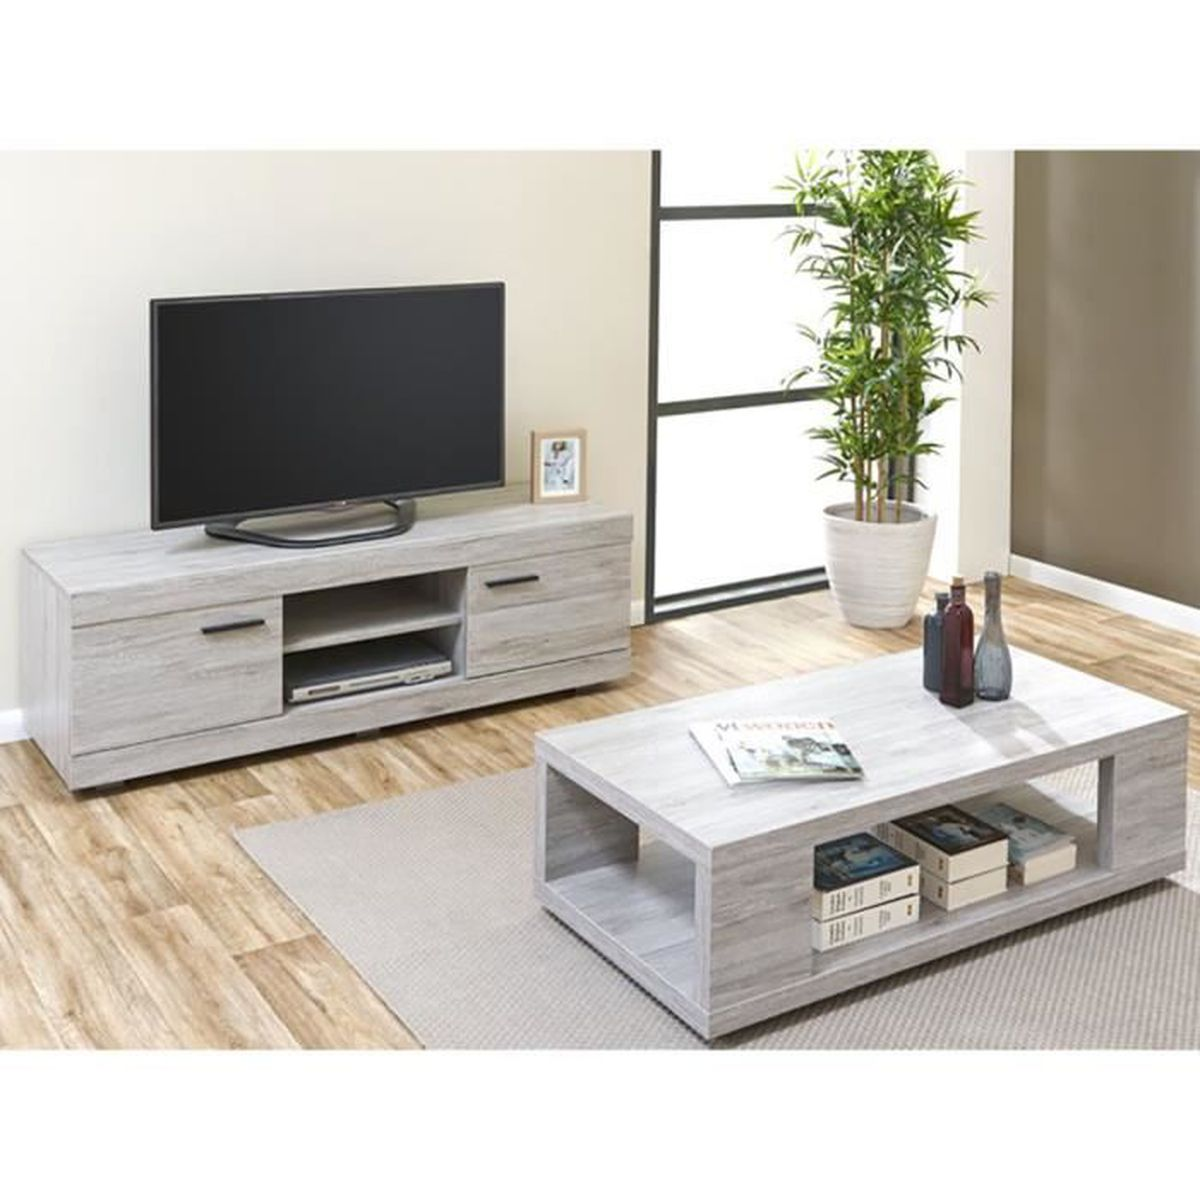 Tom ensemble table basse meuble tv gris achat for Meuble buffet salon